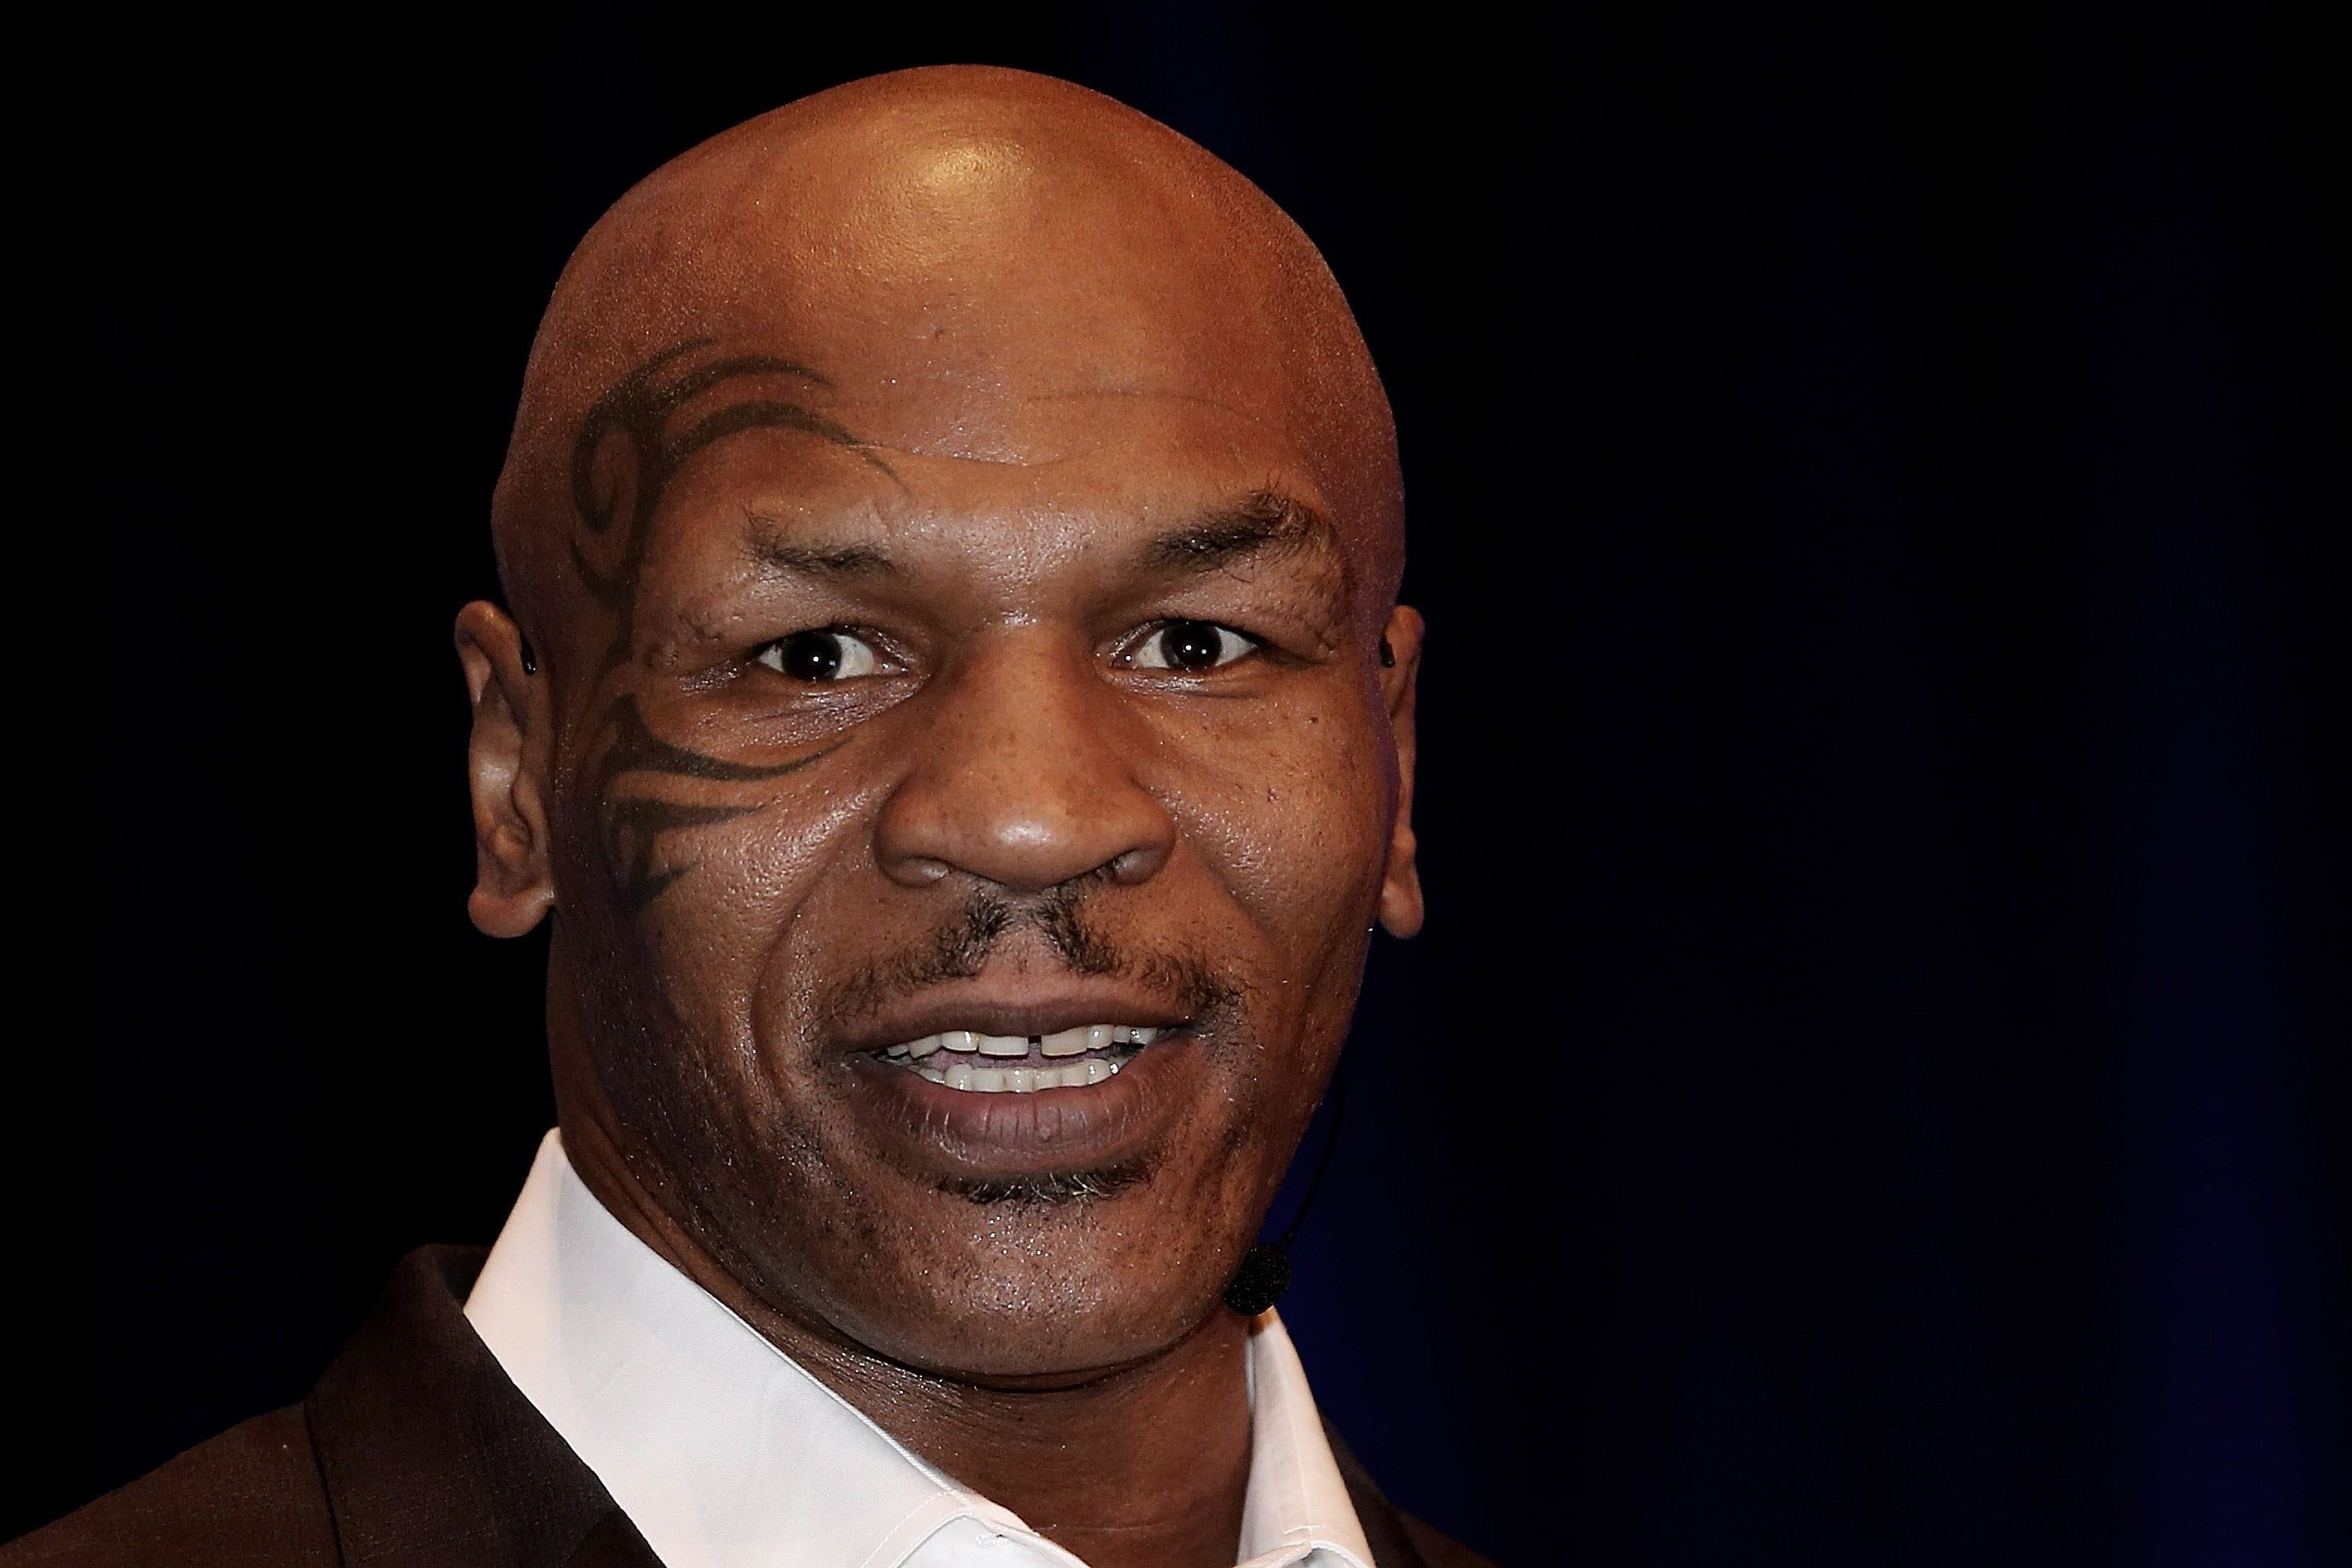 Боксер Майк Тайсон, Mike Tyson wallpaper, 3000 на 2000 пикселей